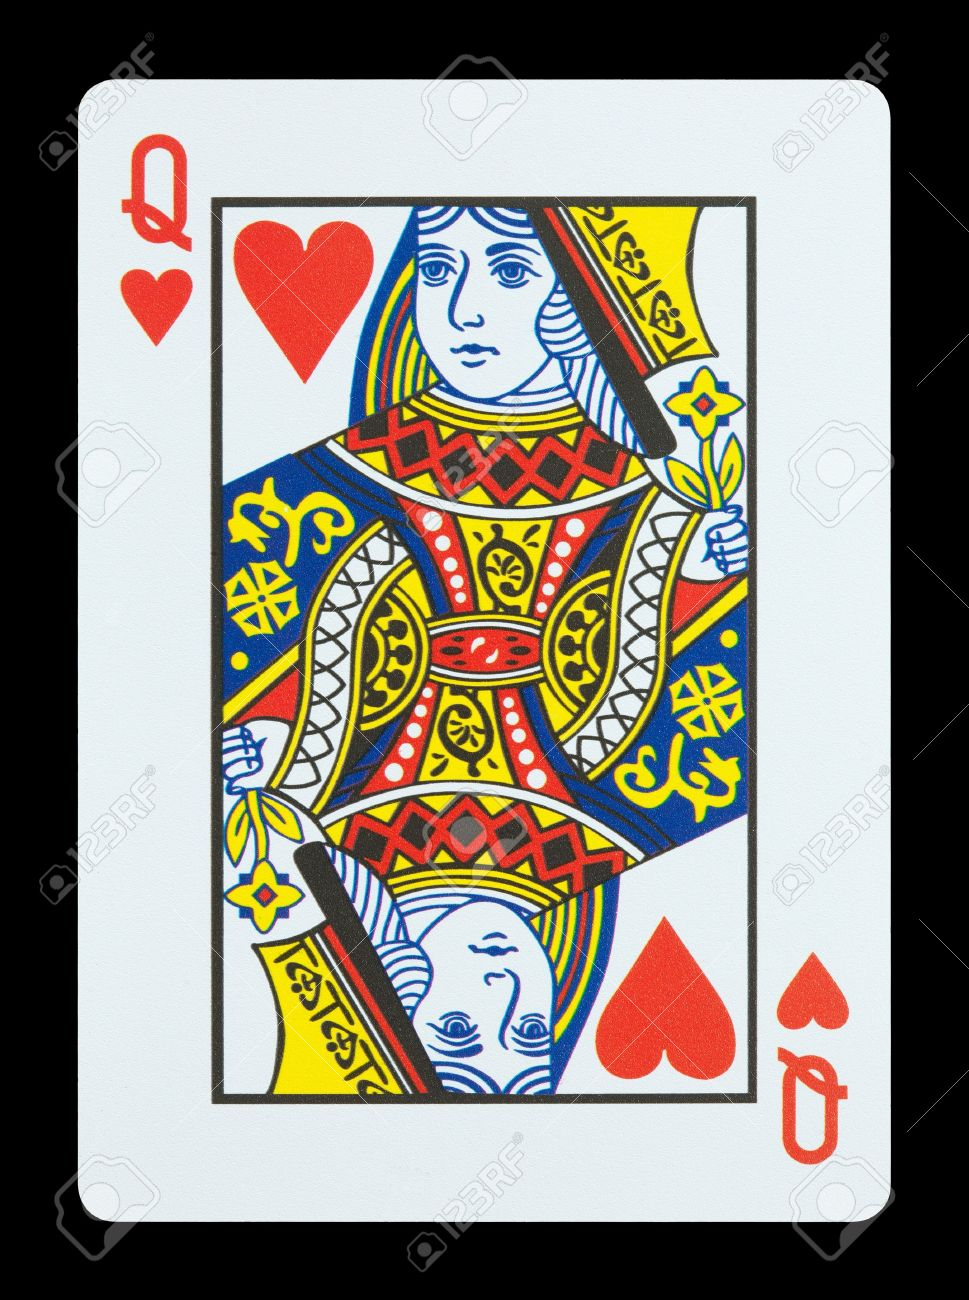 Playing card queen of hearts clipart cute png free library Playing card queen of hearts clipart cute - ClipartFest png free library